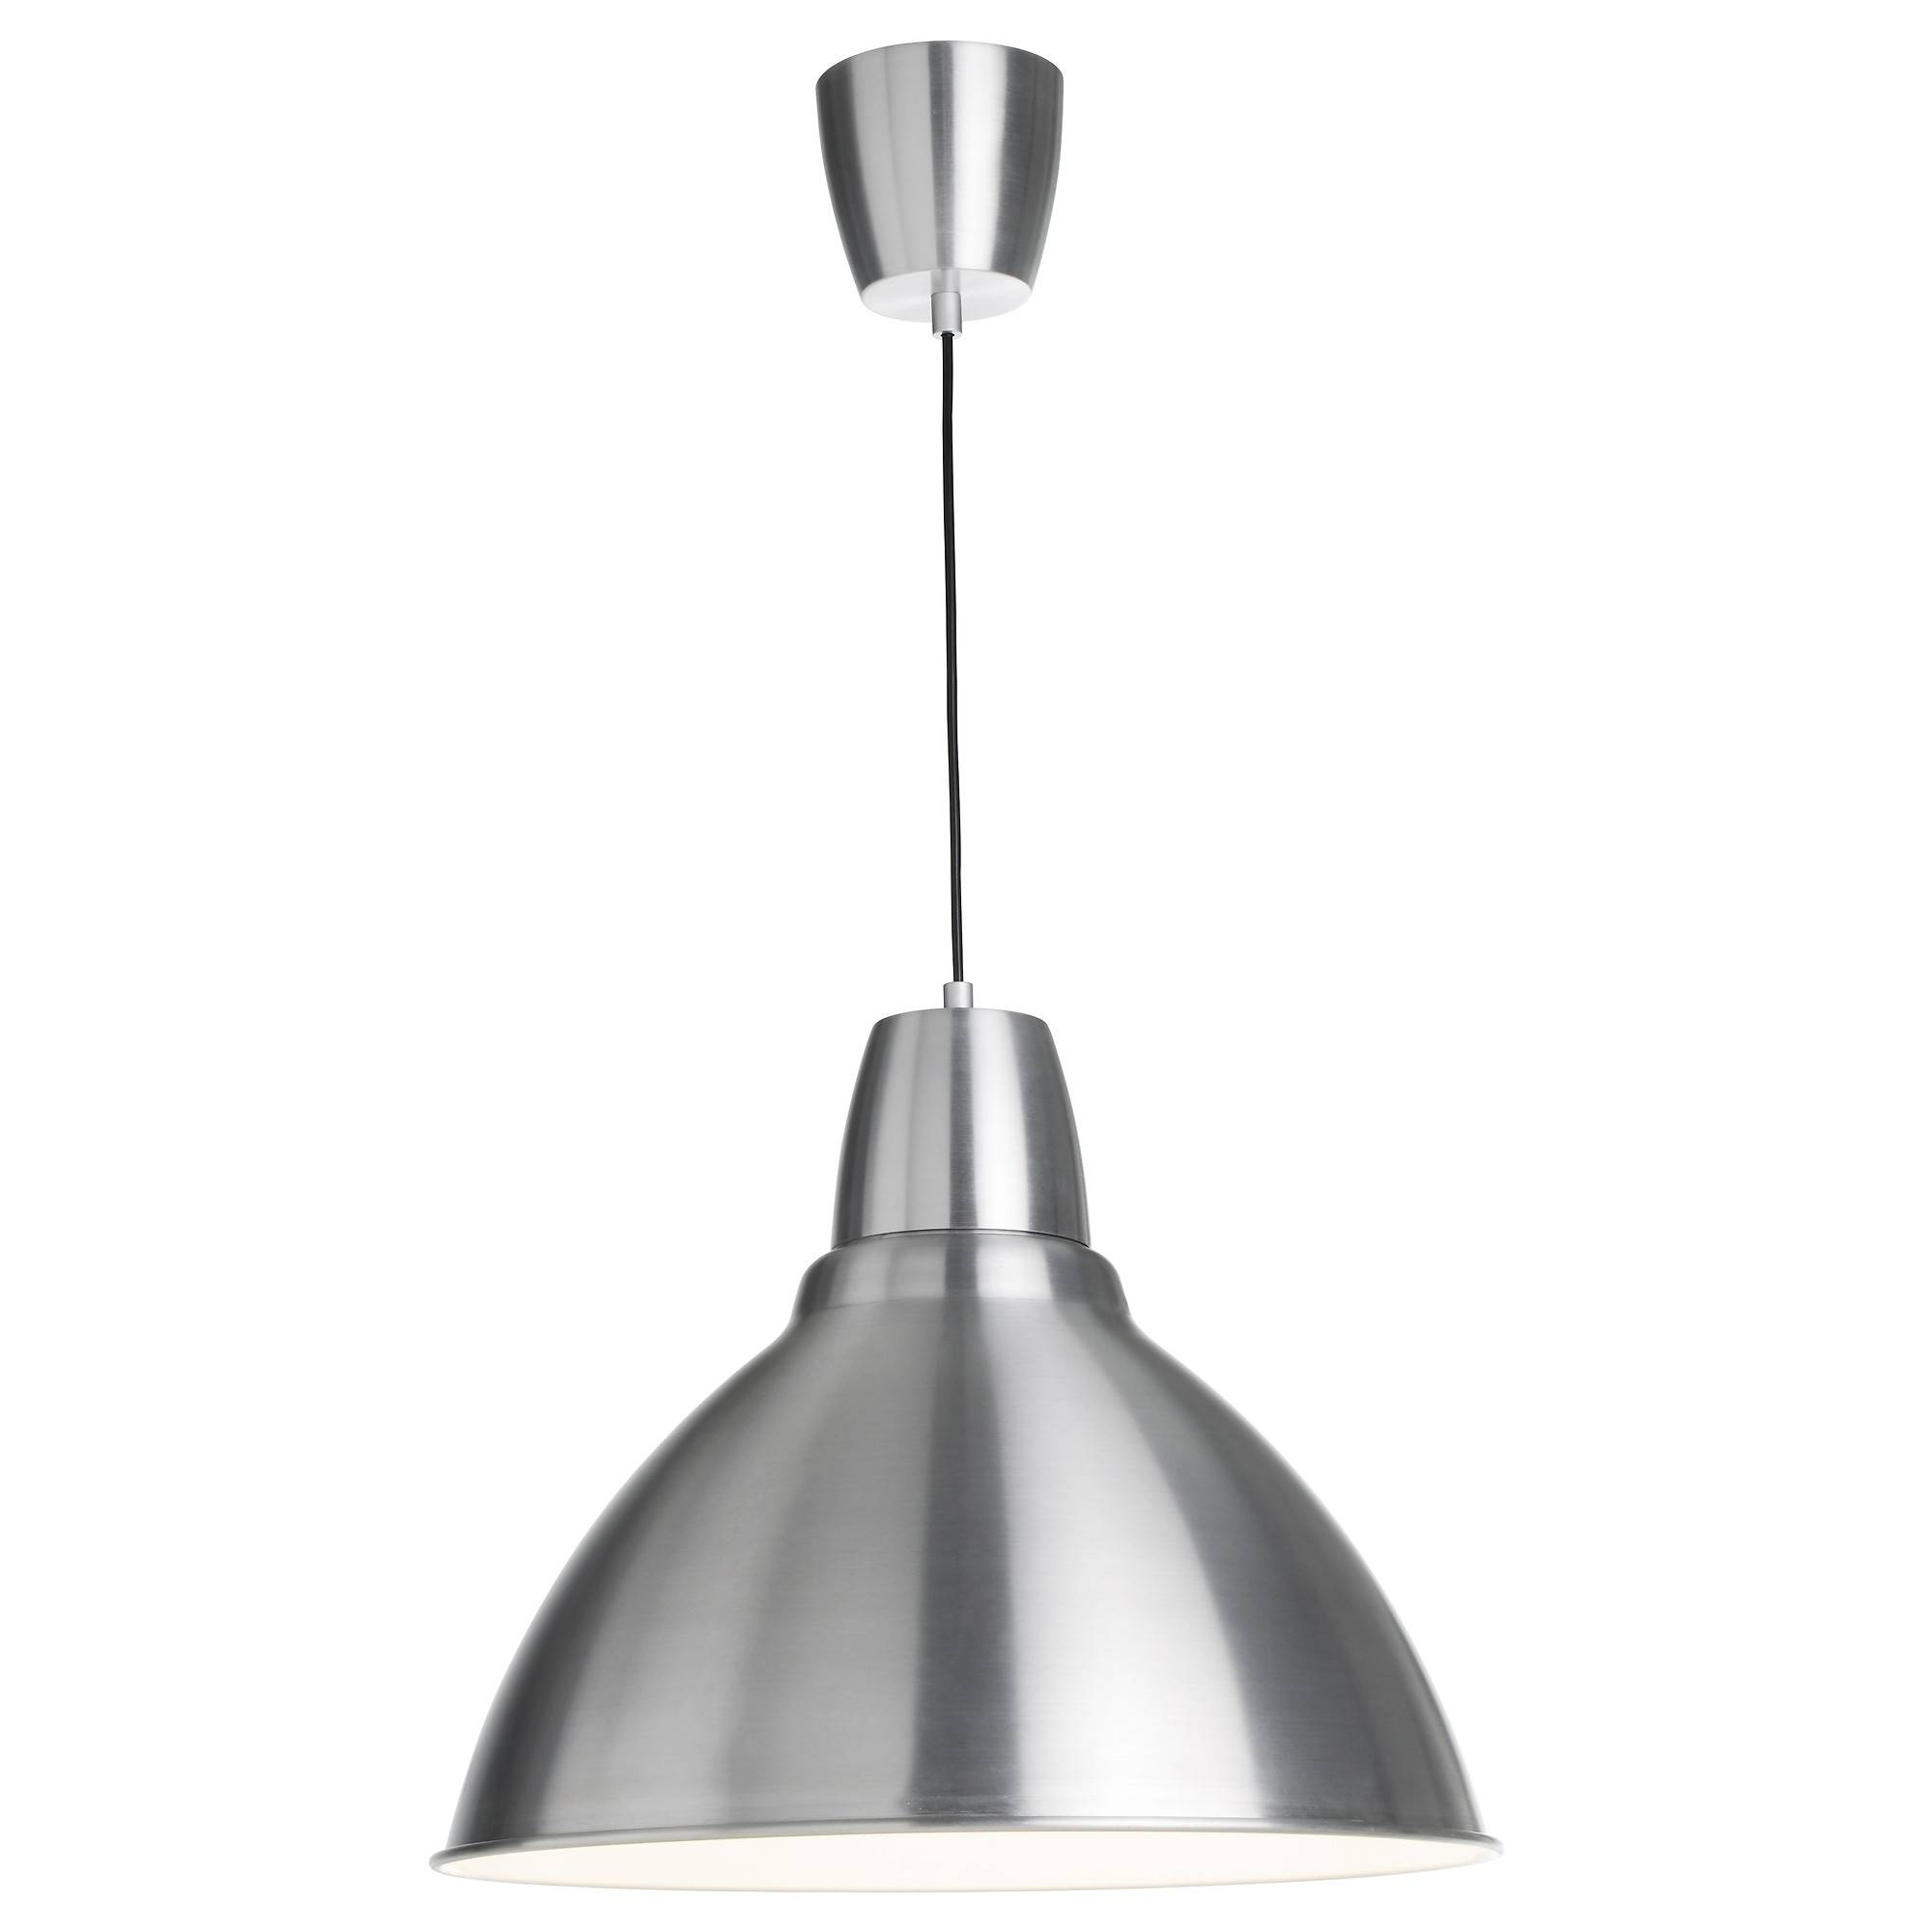 Led Ceiling Lights | Shop At Ikea Ireland throughout Ikea Ceiling Lights Fittings (Image 12 of 15)